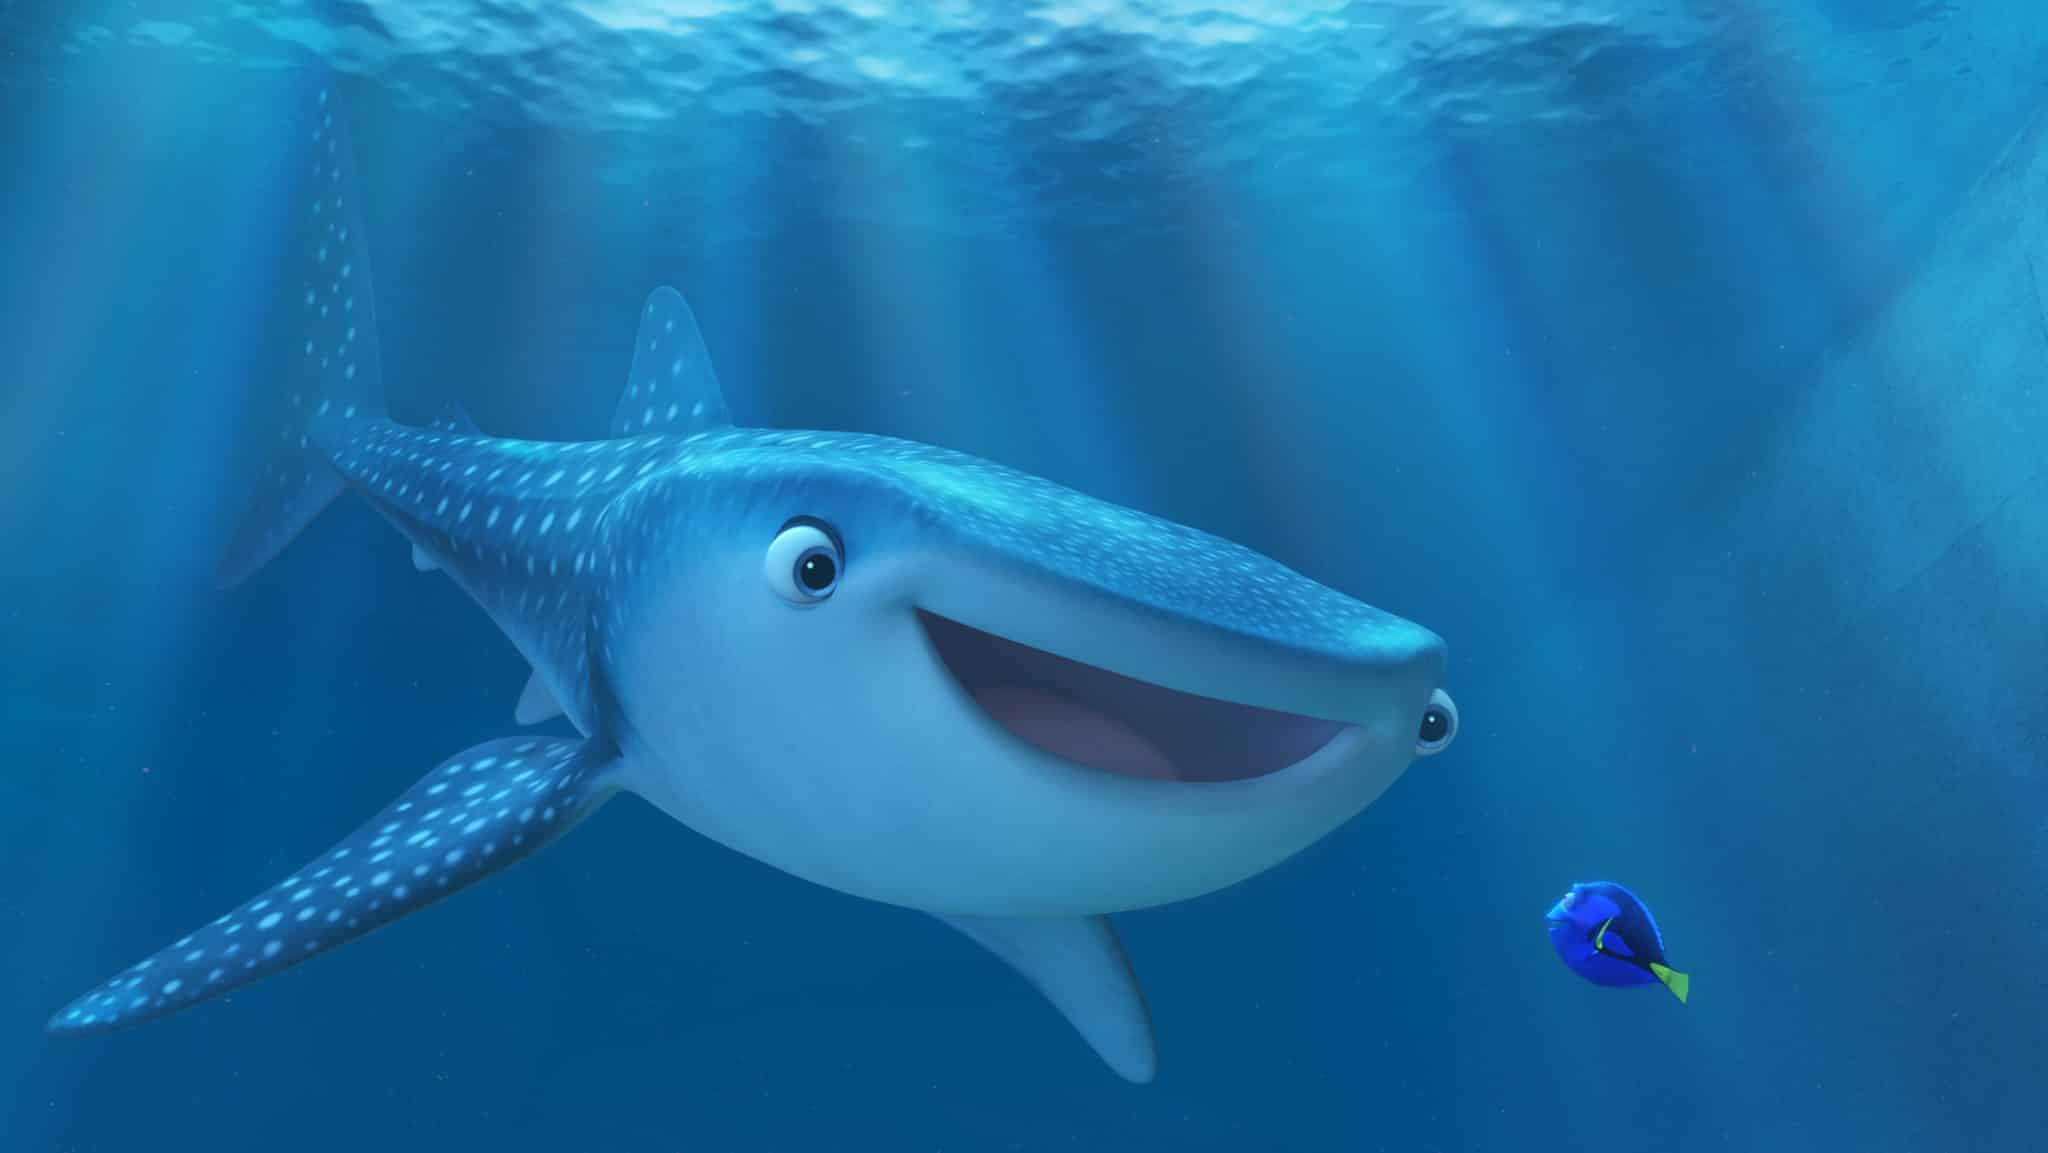 FINDING DORY. Pictured (L-R): Destiny and Dory. ©2016 Disney•Pixar. All Rights Reserved.